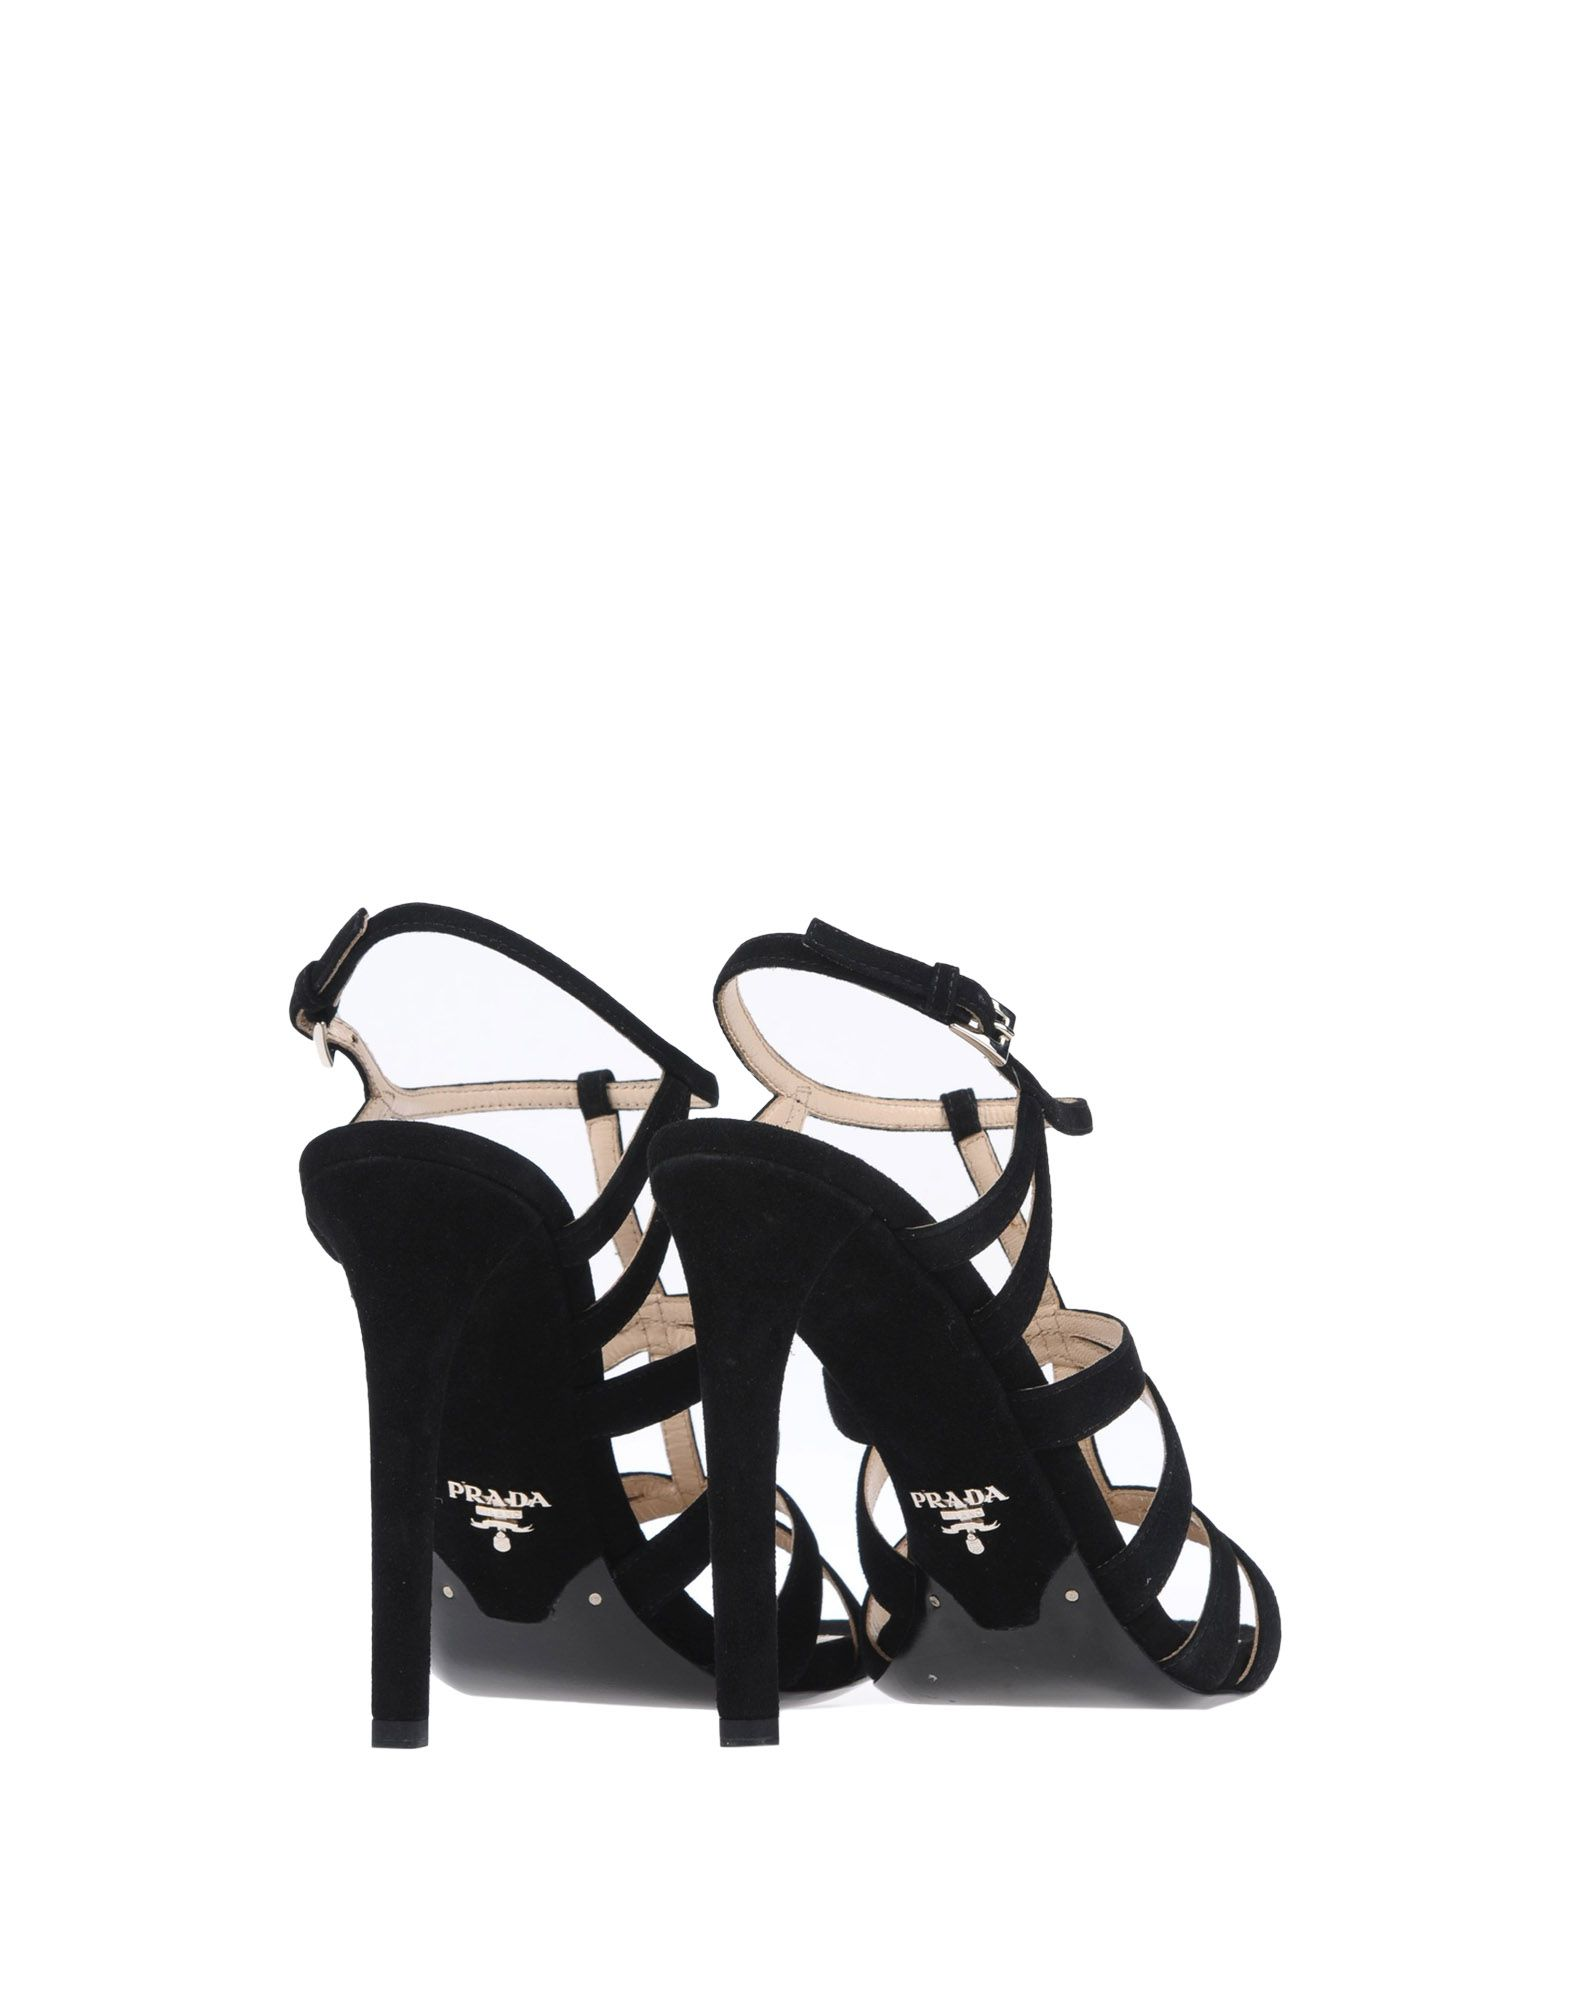 Prada Sandals - Women Prada Canada Sandals online on  Canada Prada - 11211203XR 59dc3b